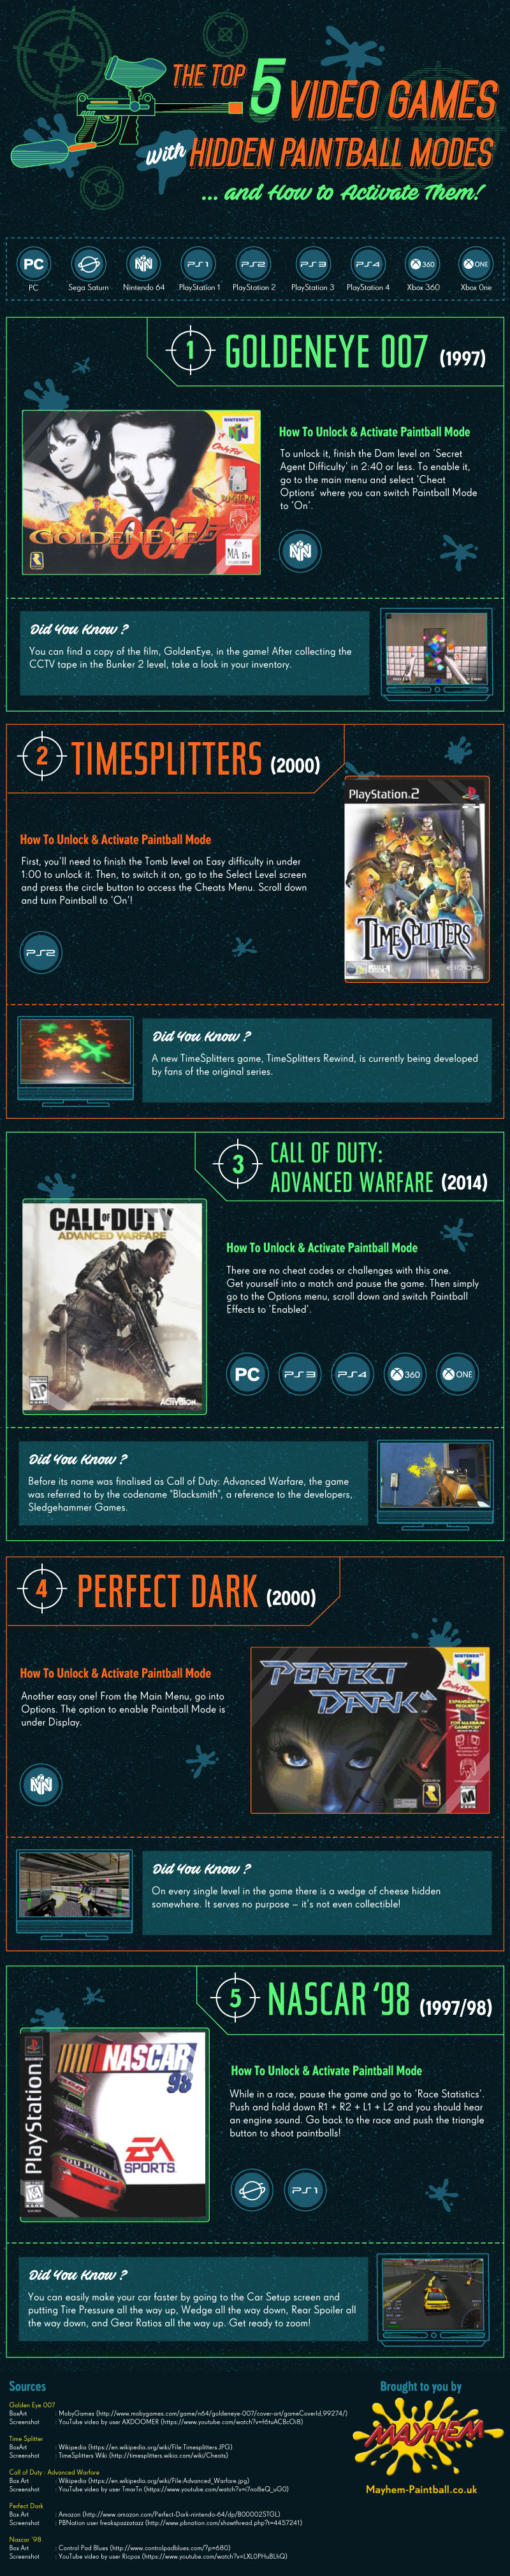 top-5-video-game-paintball-modes-infographic